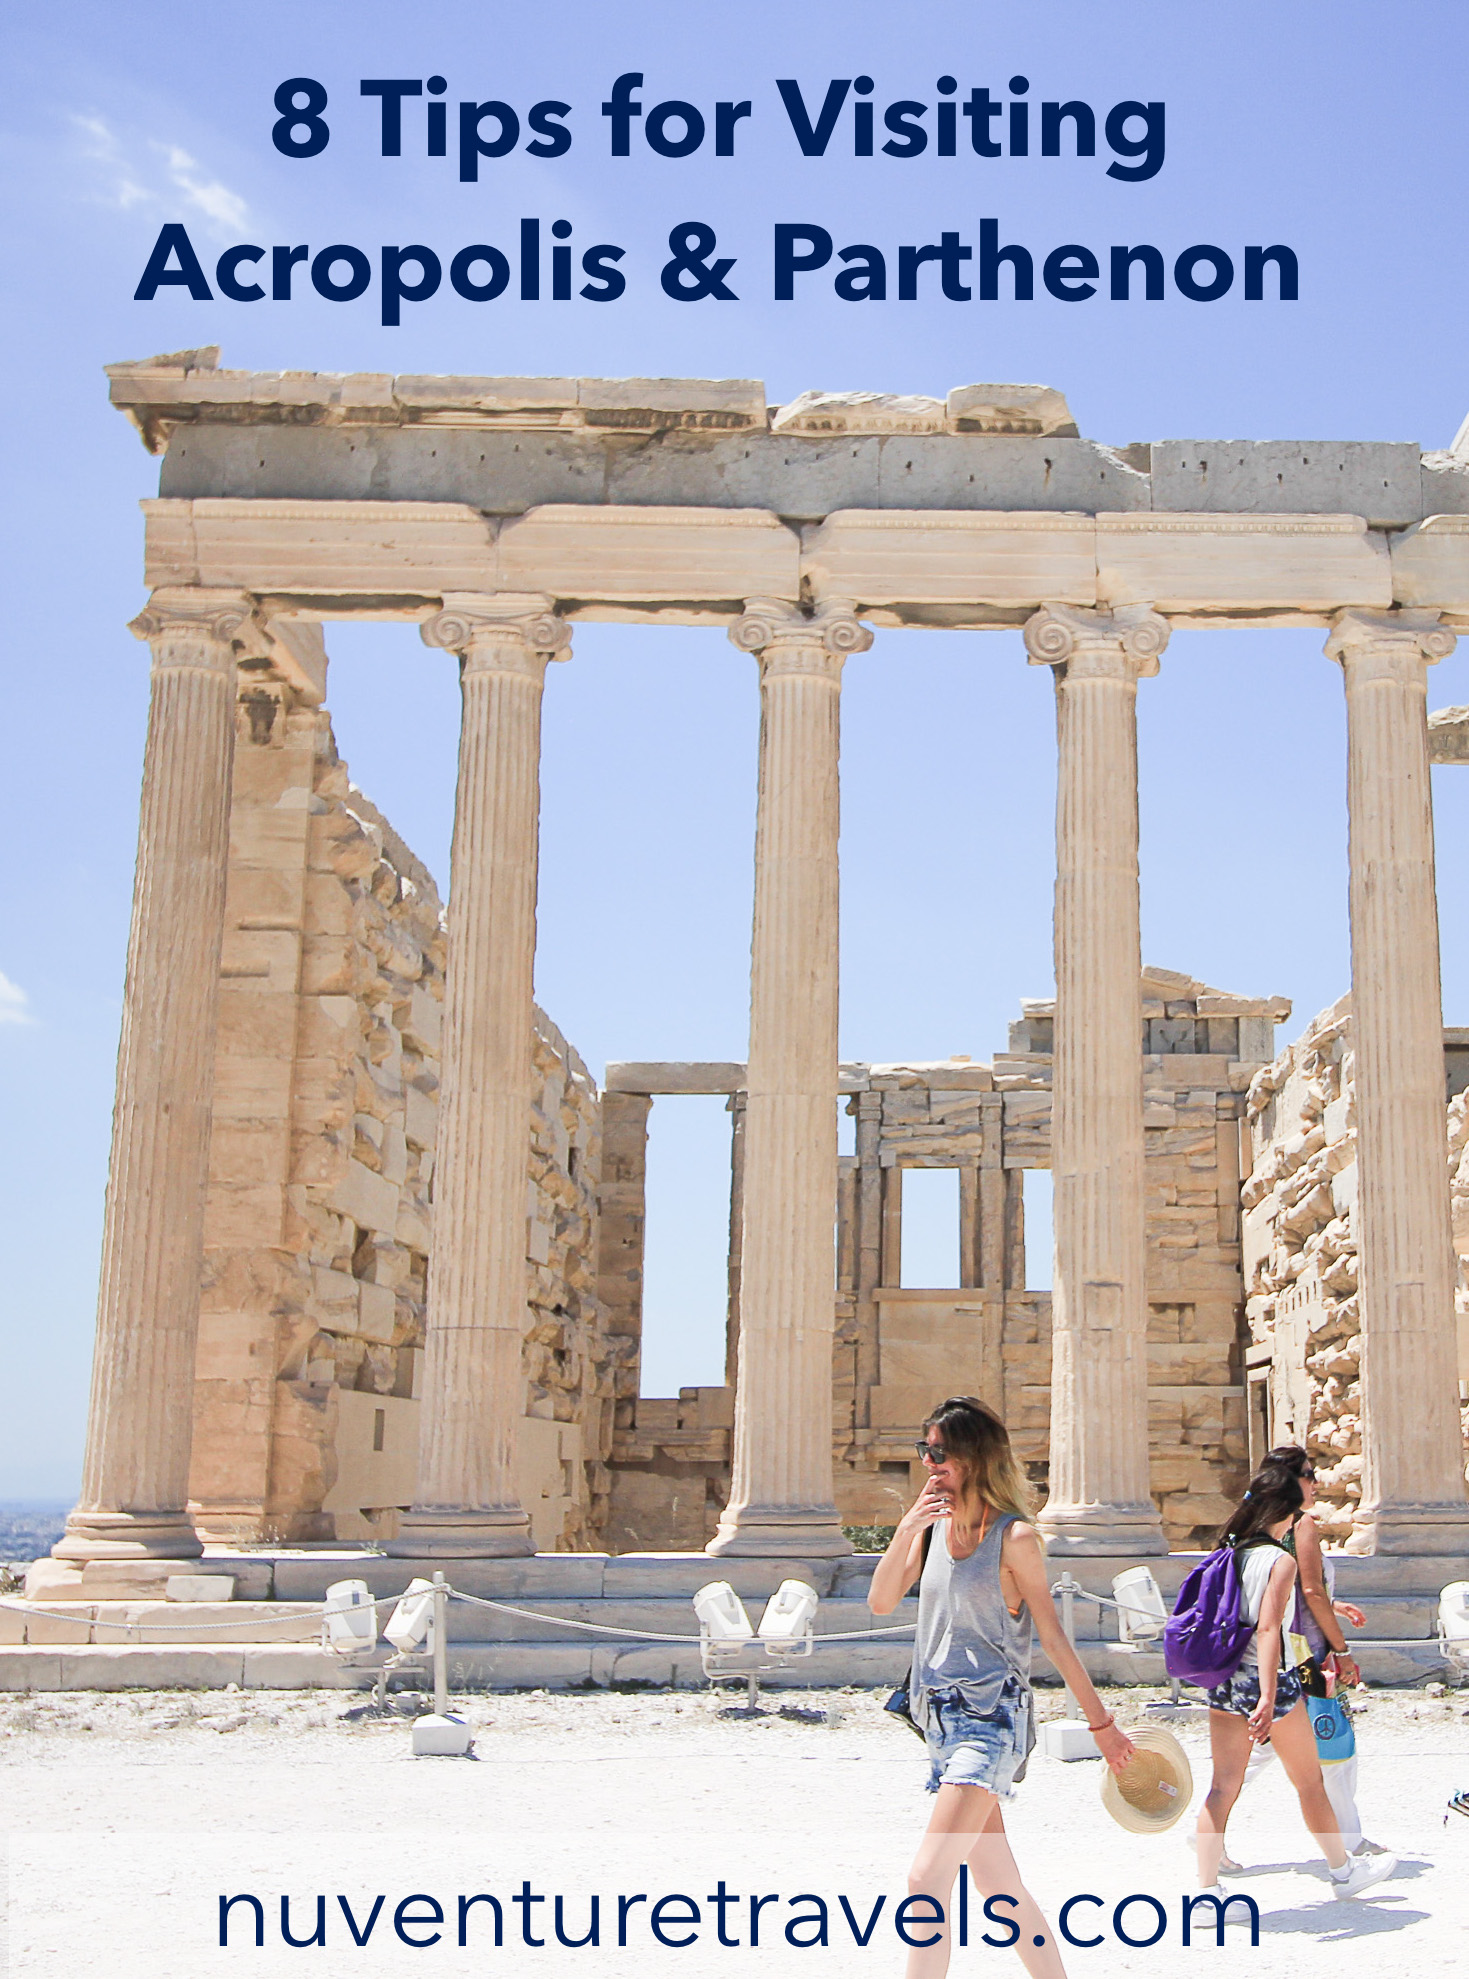 8 Tips for Visiting the Parthenon and Acropolis Before You Visit